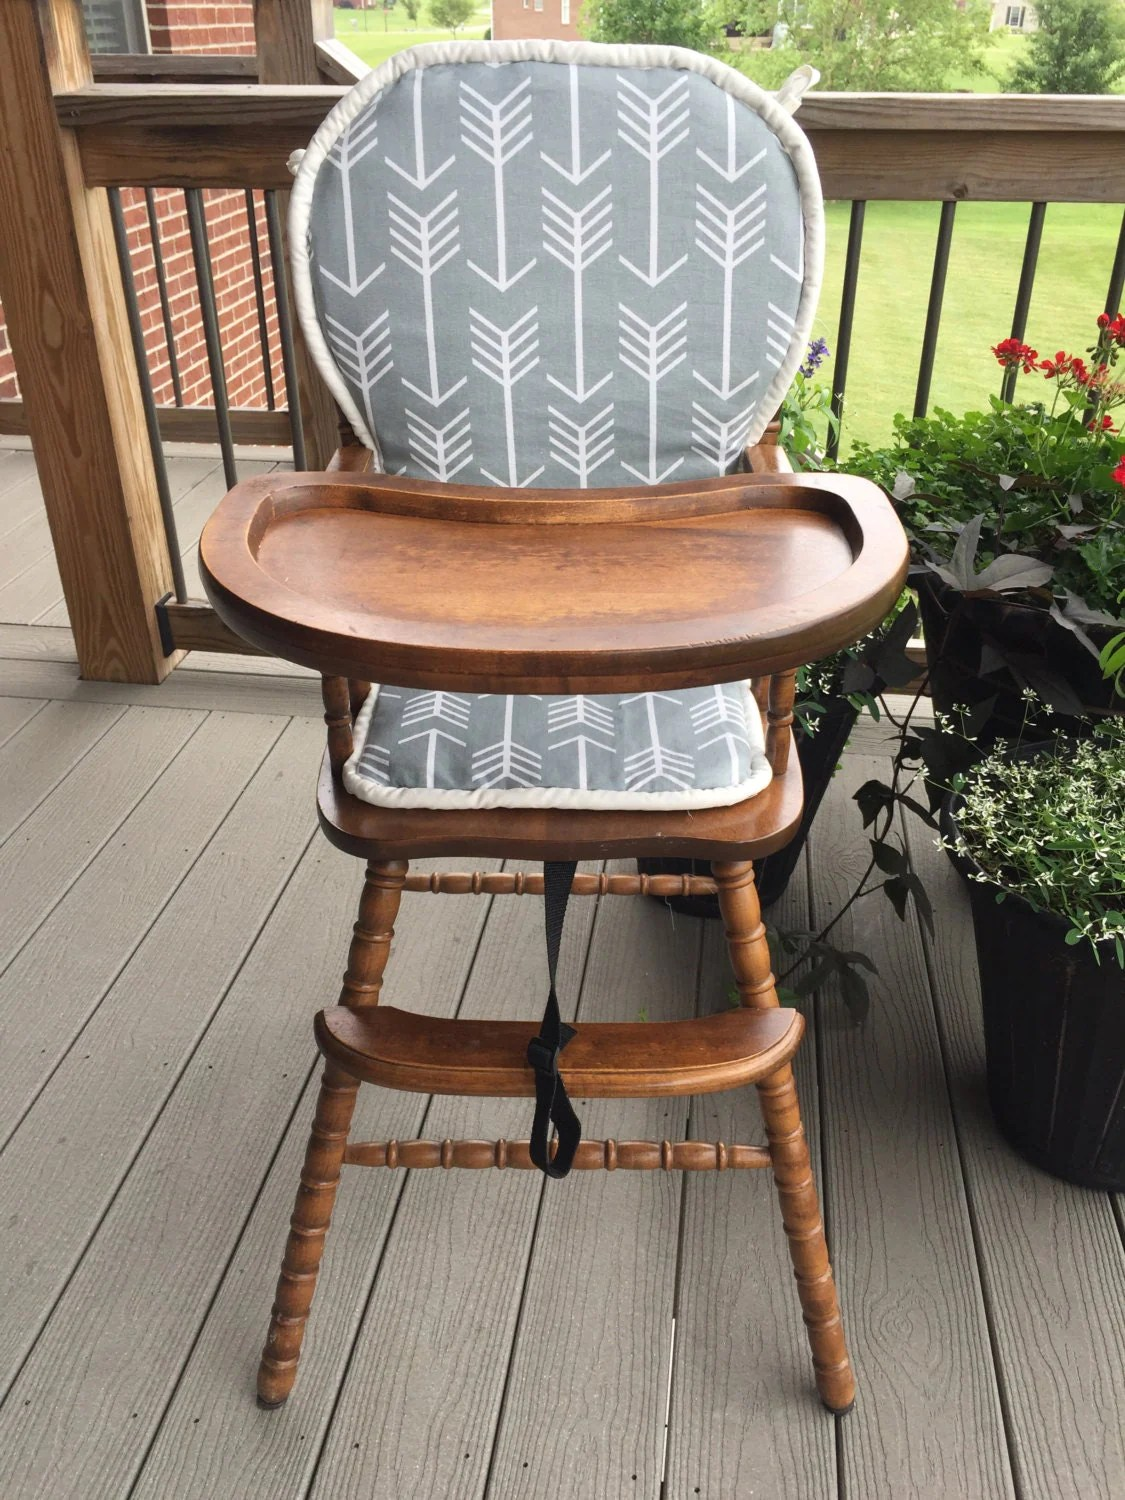 Chair Pad Covers Highchair Cover High Chair Cover High Chair Cushion